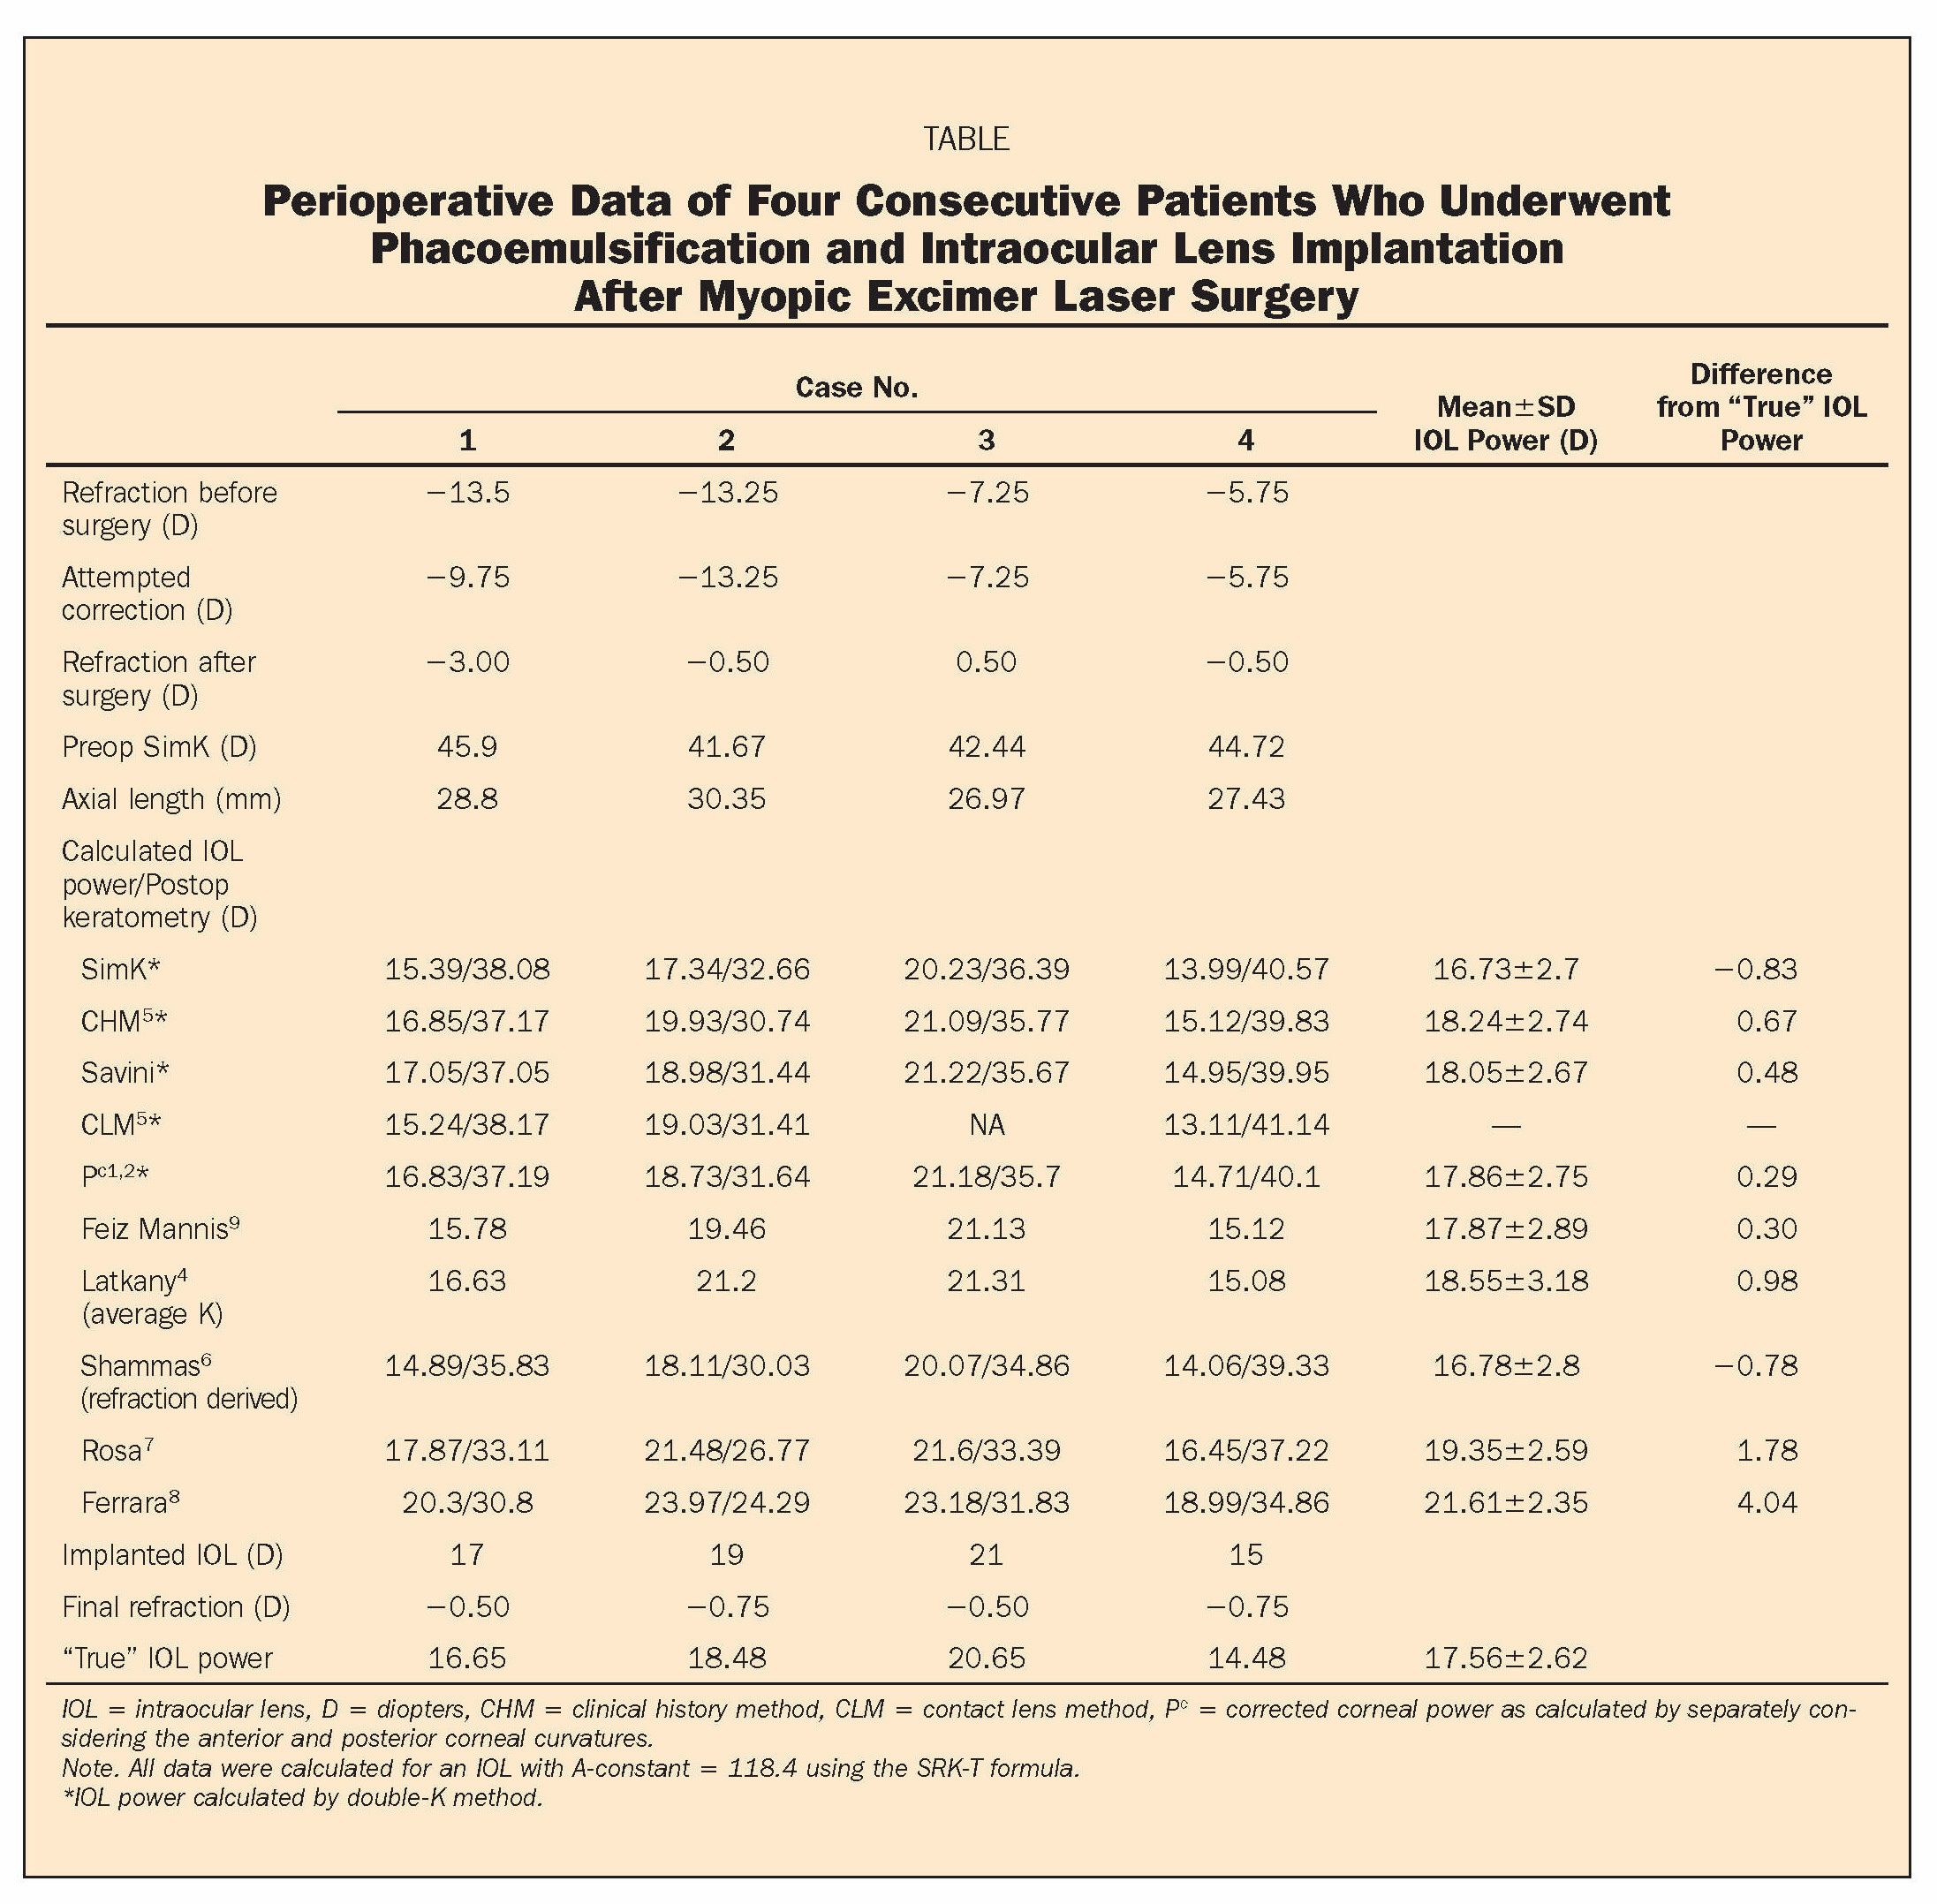 TABLEPerioperative Data of Four Consecutive Patients Who Underwent Phacoemulsification and Intraocular Lens Implantation After Myopic Excimer Laser Surgery